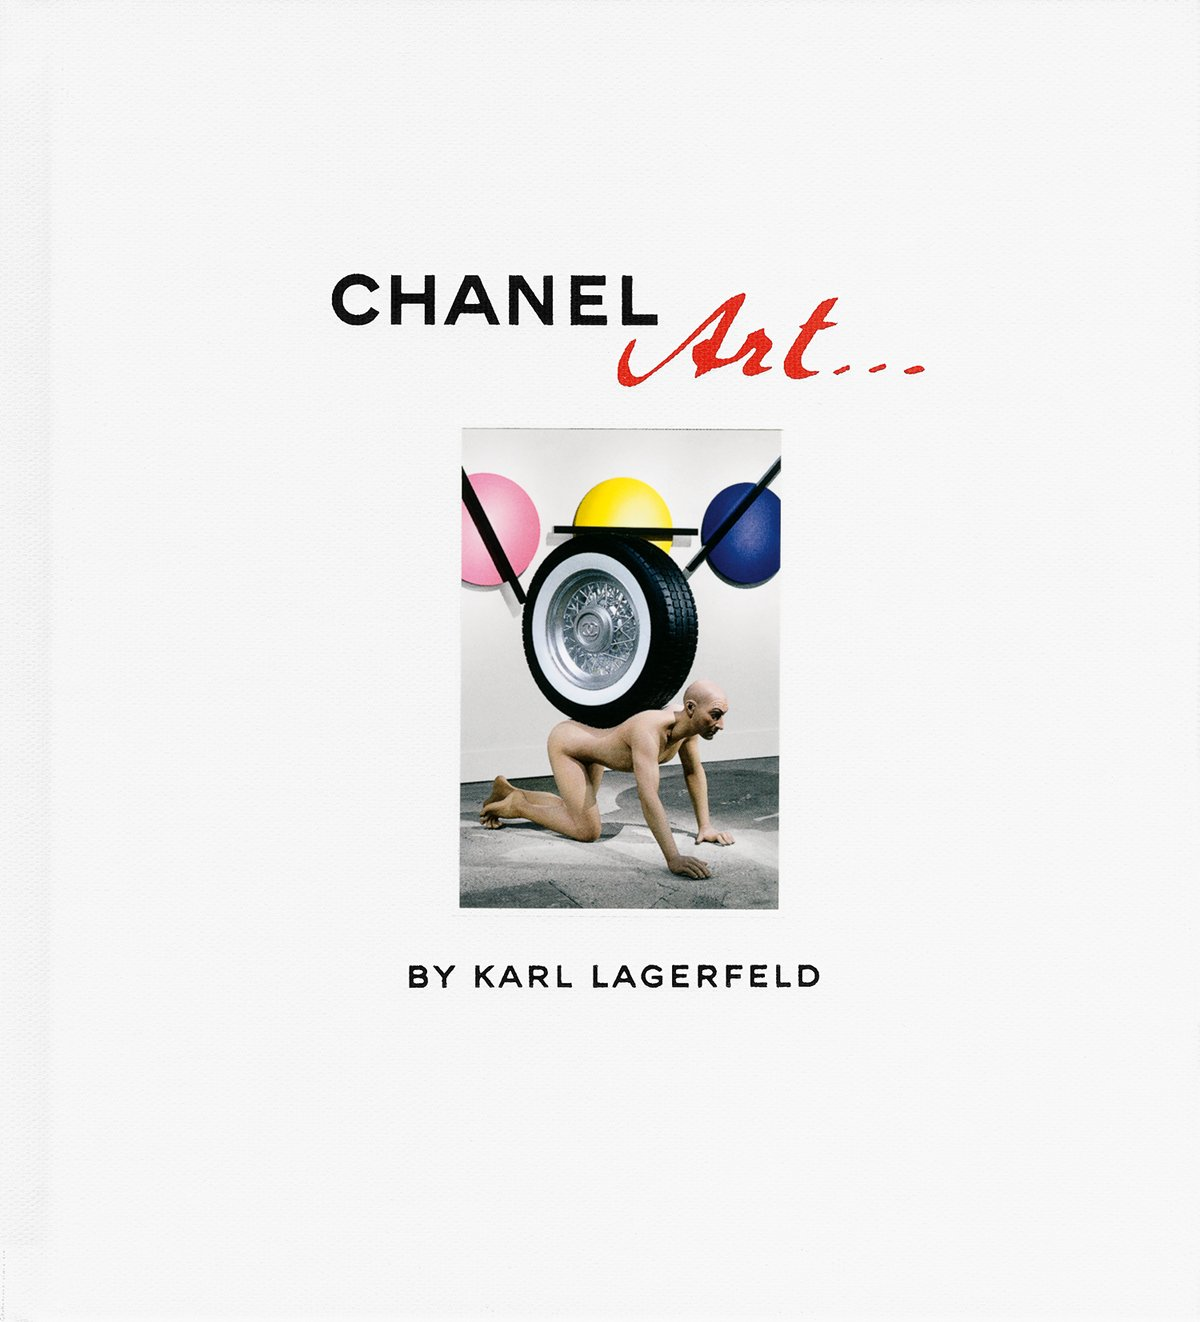 Karl Lagerfeld's Artwork for Chanel Immortalized in a Coffee Table Book